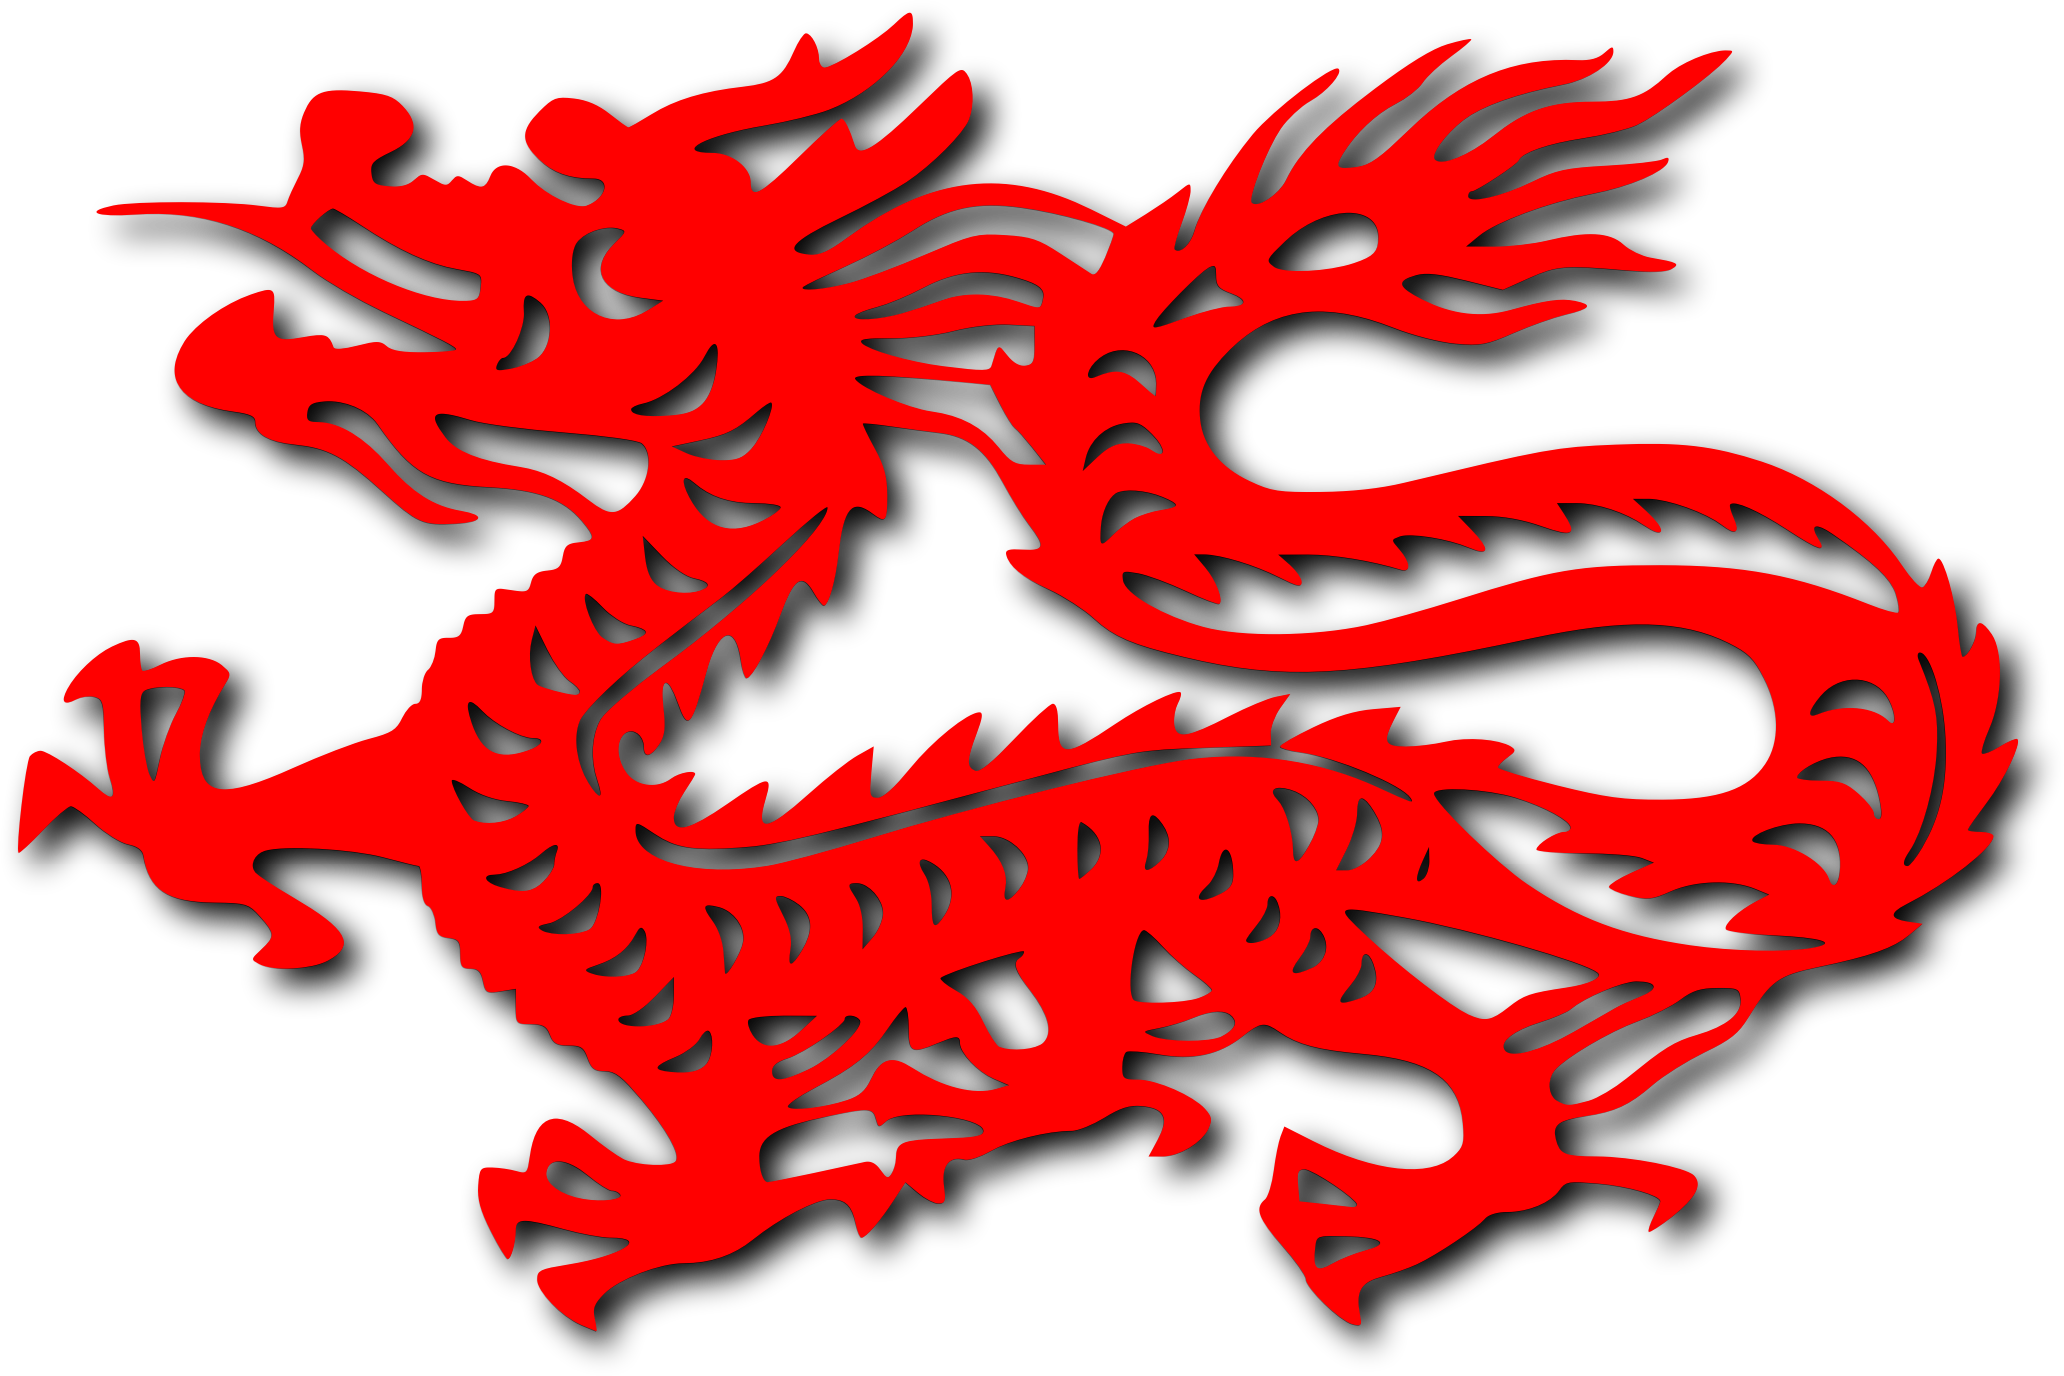 Red Chinese Dragon Cut Out 17379 Transparentpng